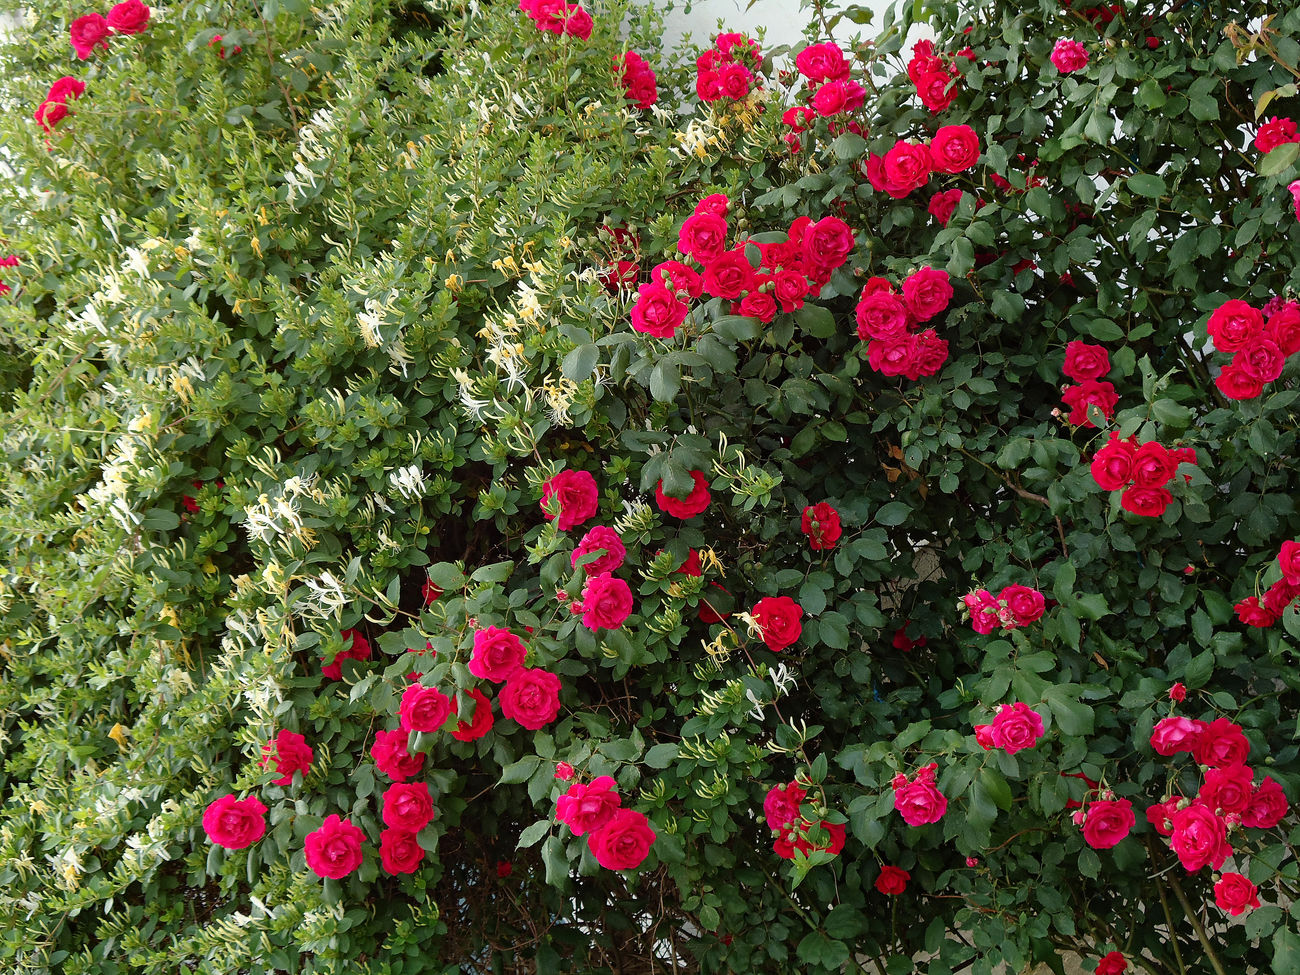 Diagonal red rose hedge. Blooms Bush Climbers Climbing Climbing Roses Clusters Diagonal Exuberant Flourishing Flowers Garden Garden Flowers Garden Roses Hedge Lush Foliage Ramblers Rambling Rose Red Roses Rosas Rose Bush Roses Shrubs Spring Flowers Spring May Spring Roses